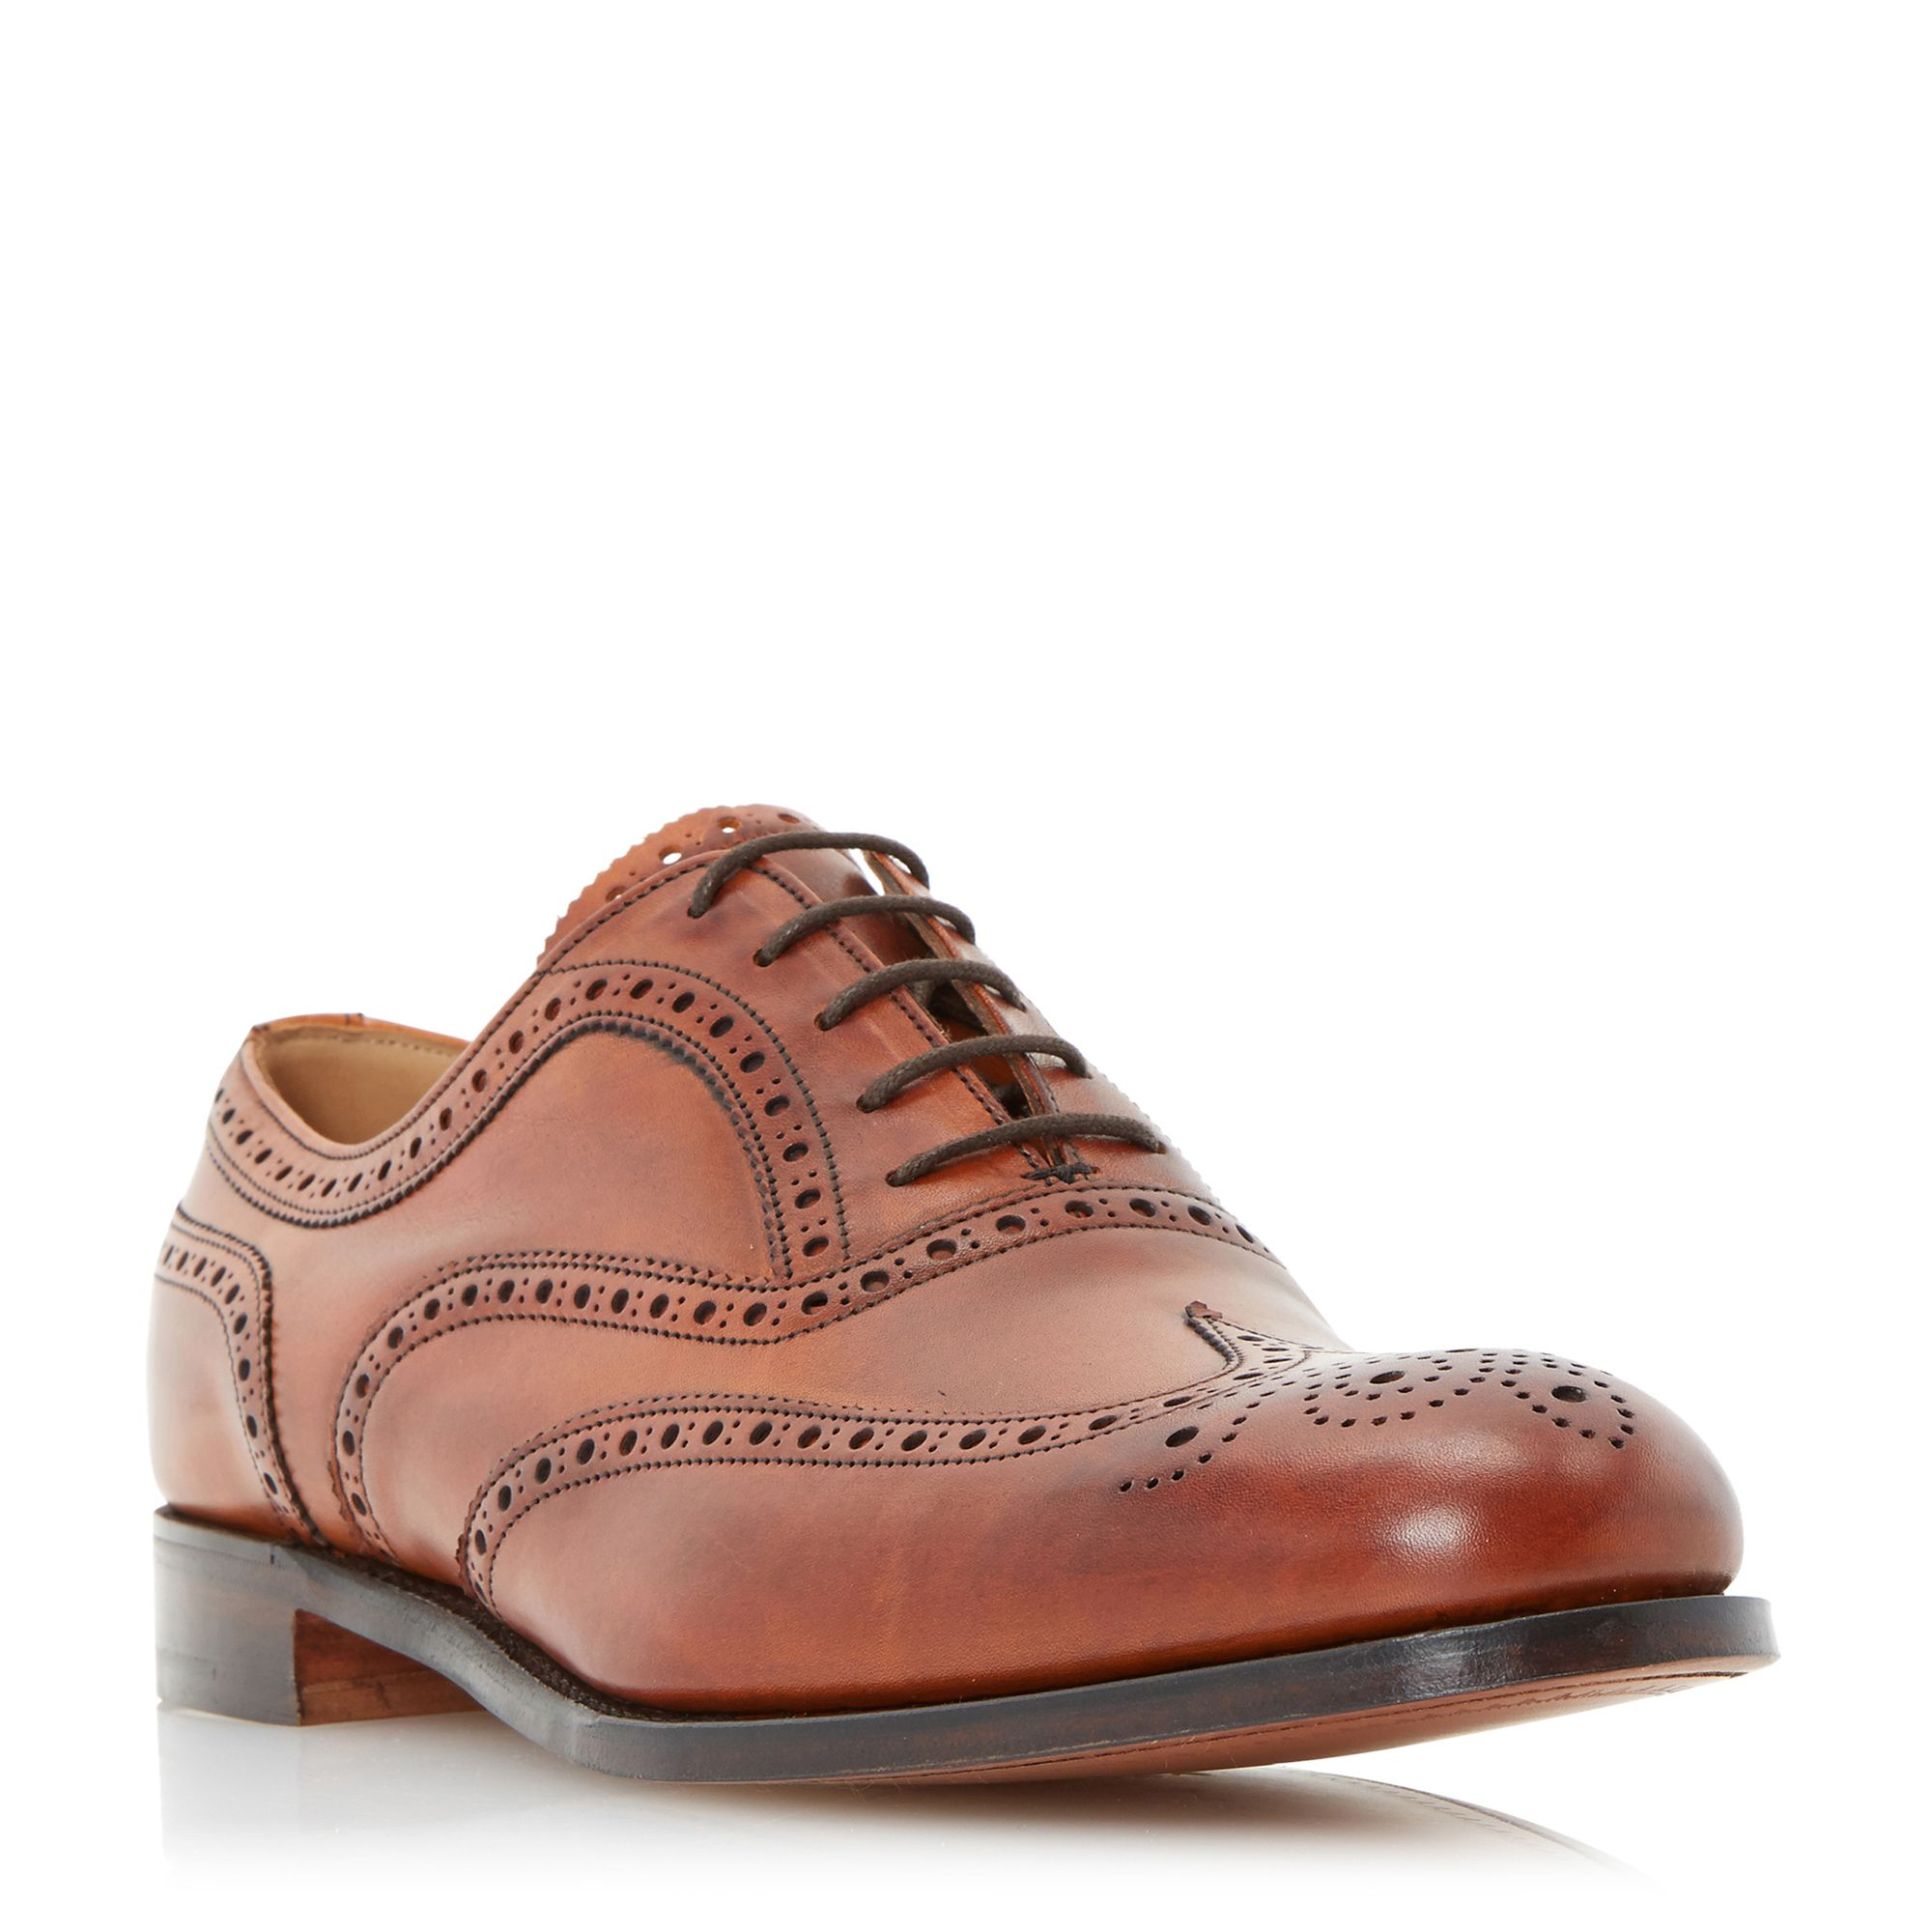 Cheaney Mens Cheaney Mens Arthur III Wingtip Brogues, Tan